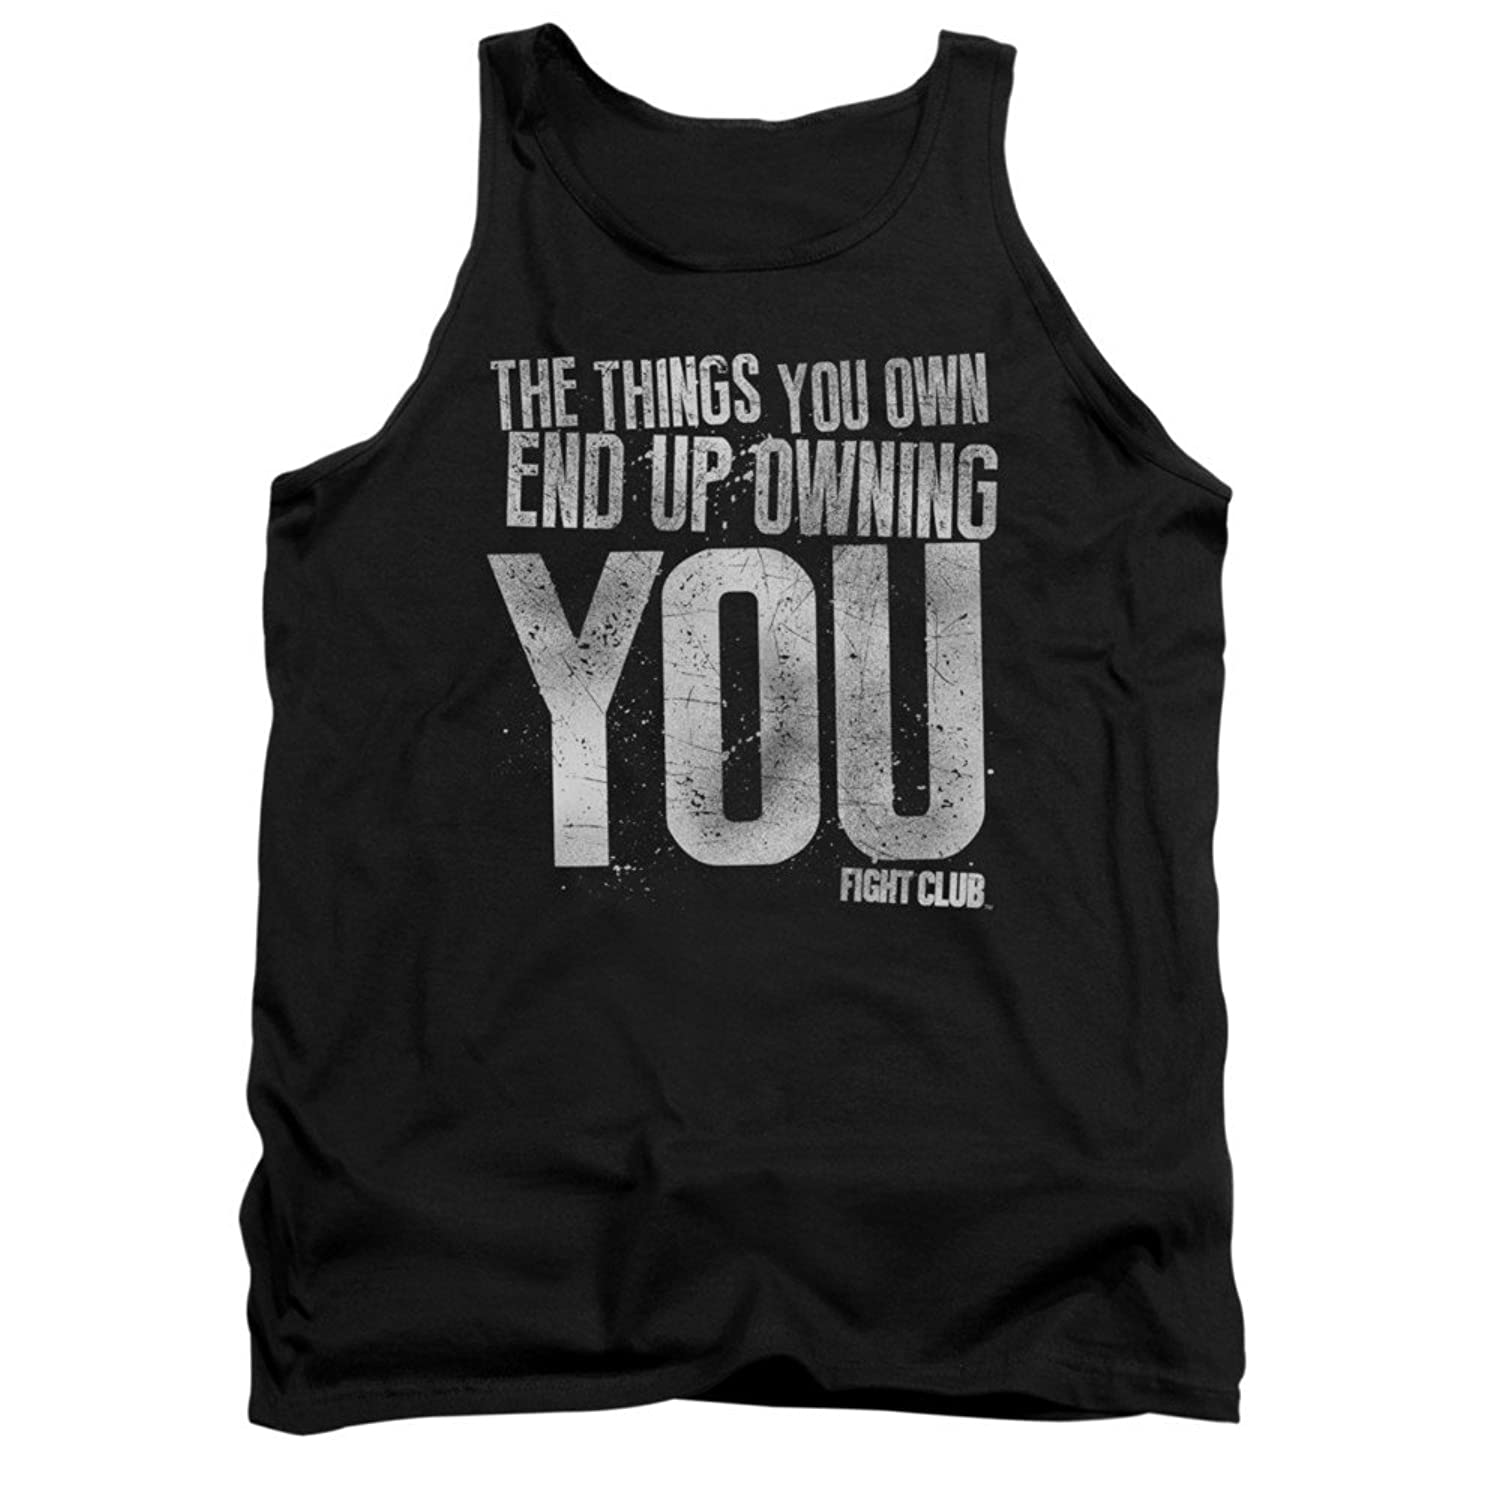 Fight Club 1999 Dramatic Action Movie Things You Own Own You Adult Tank Shirt